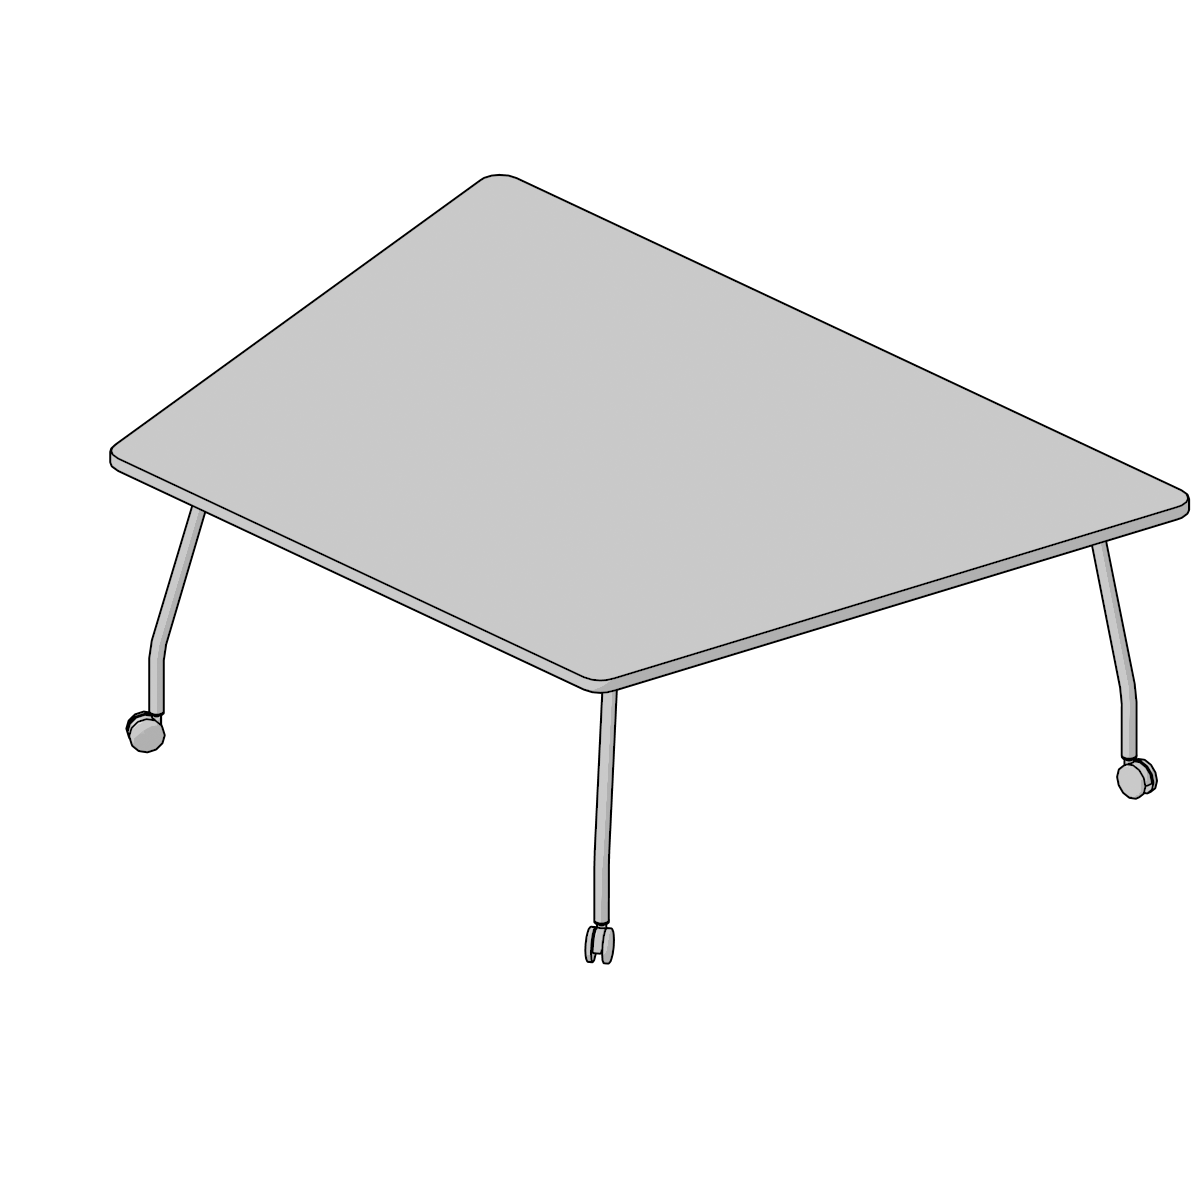 d models archive. Trapezoid 3d png picture freeuse download